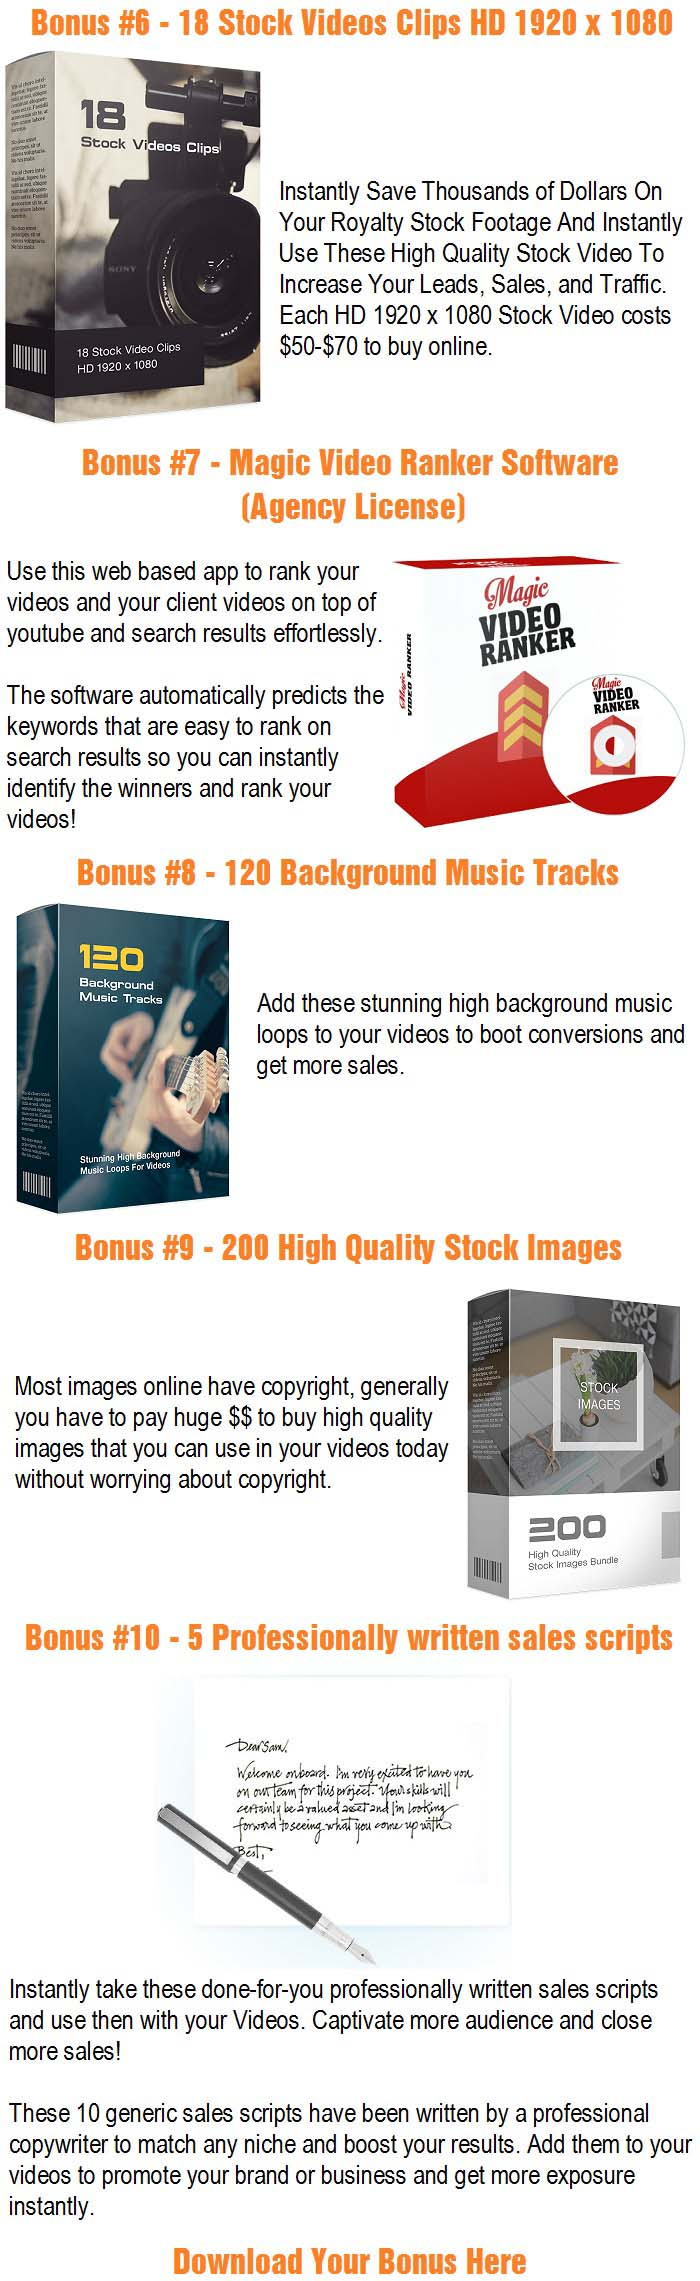 TXTVideo Direct Bonuses